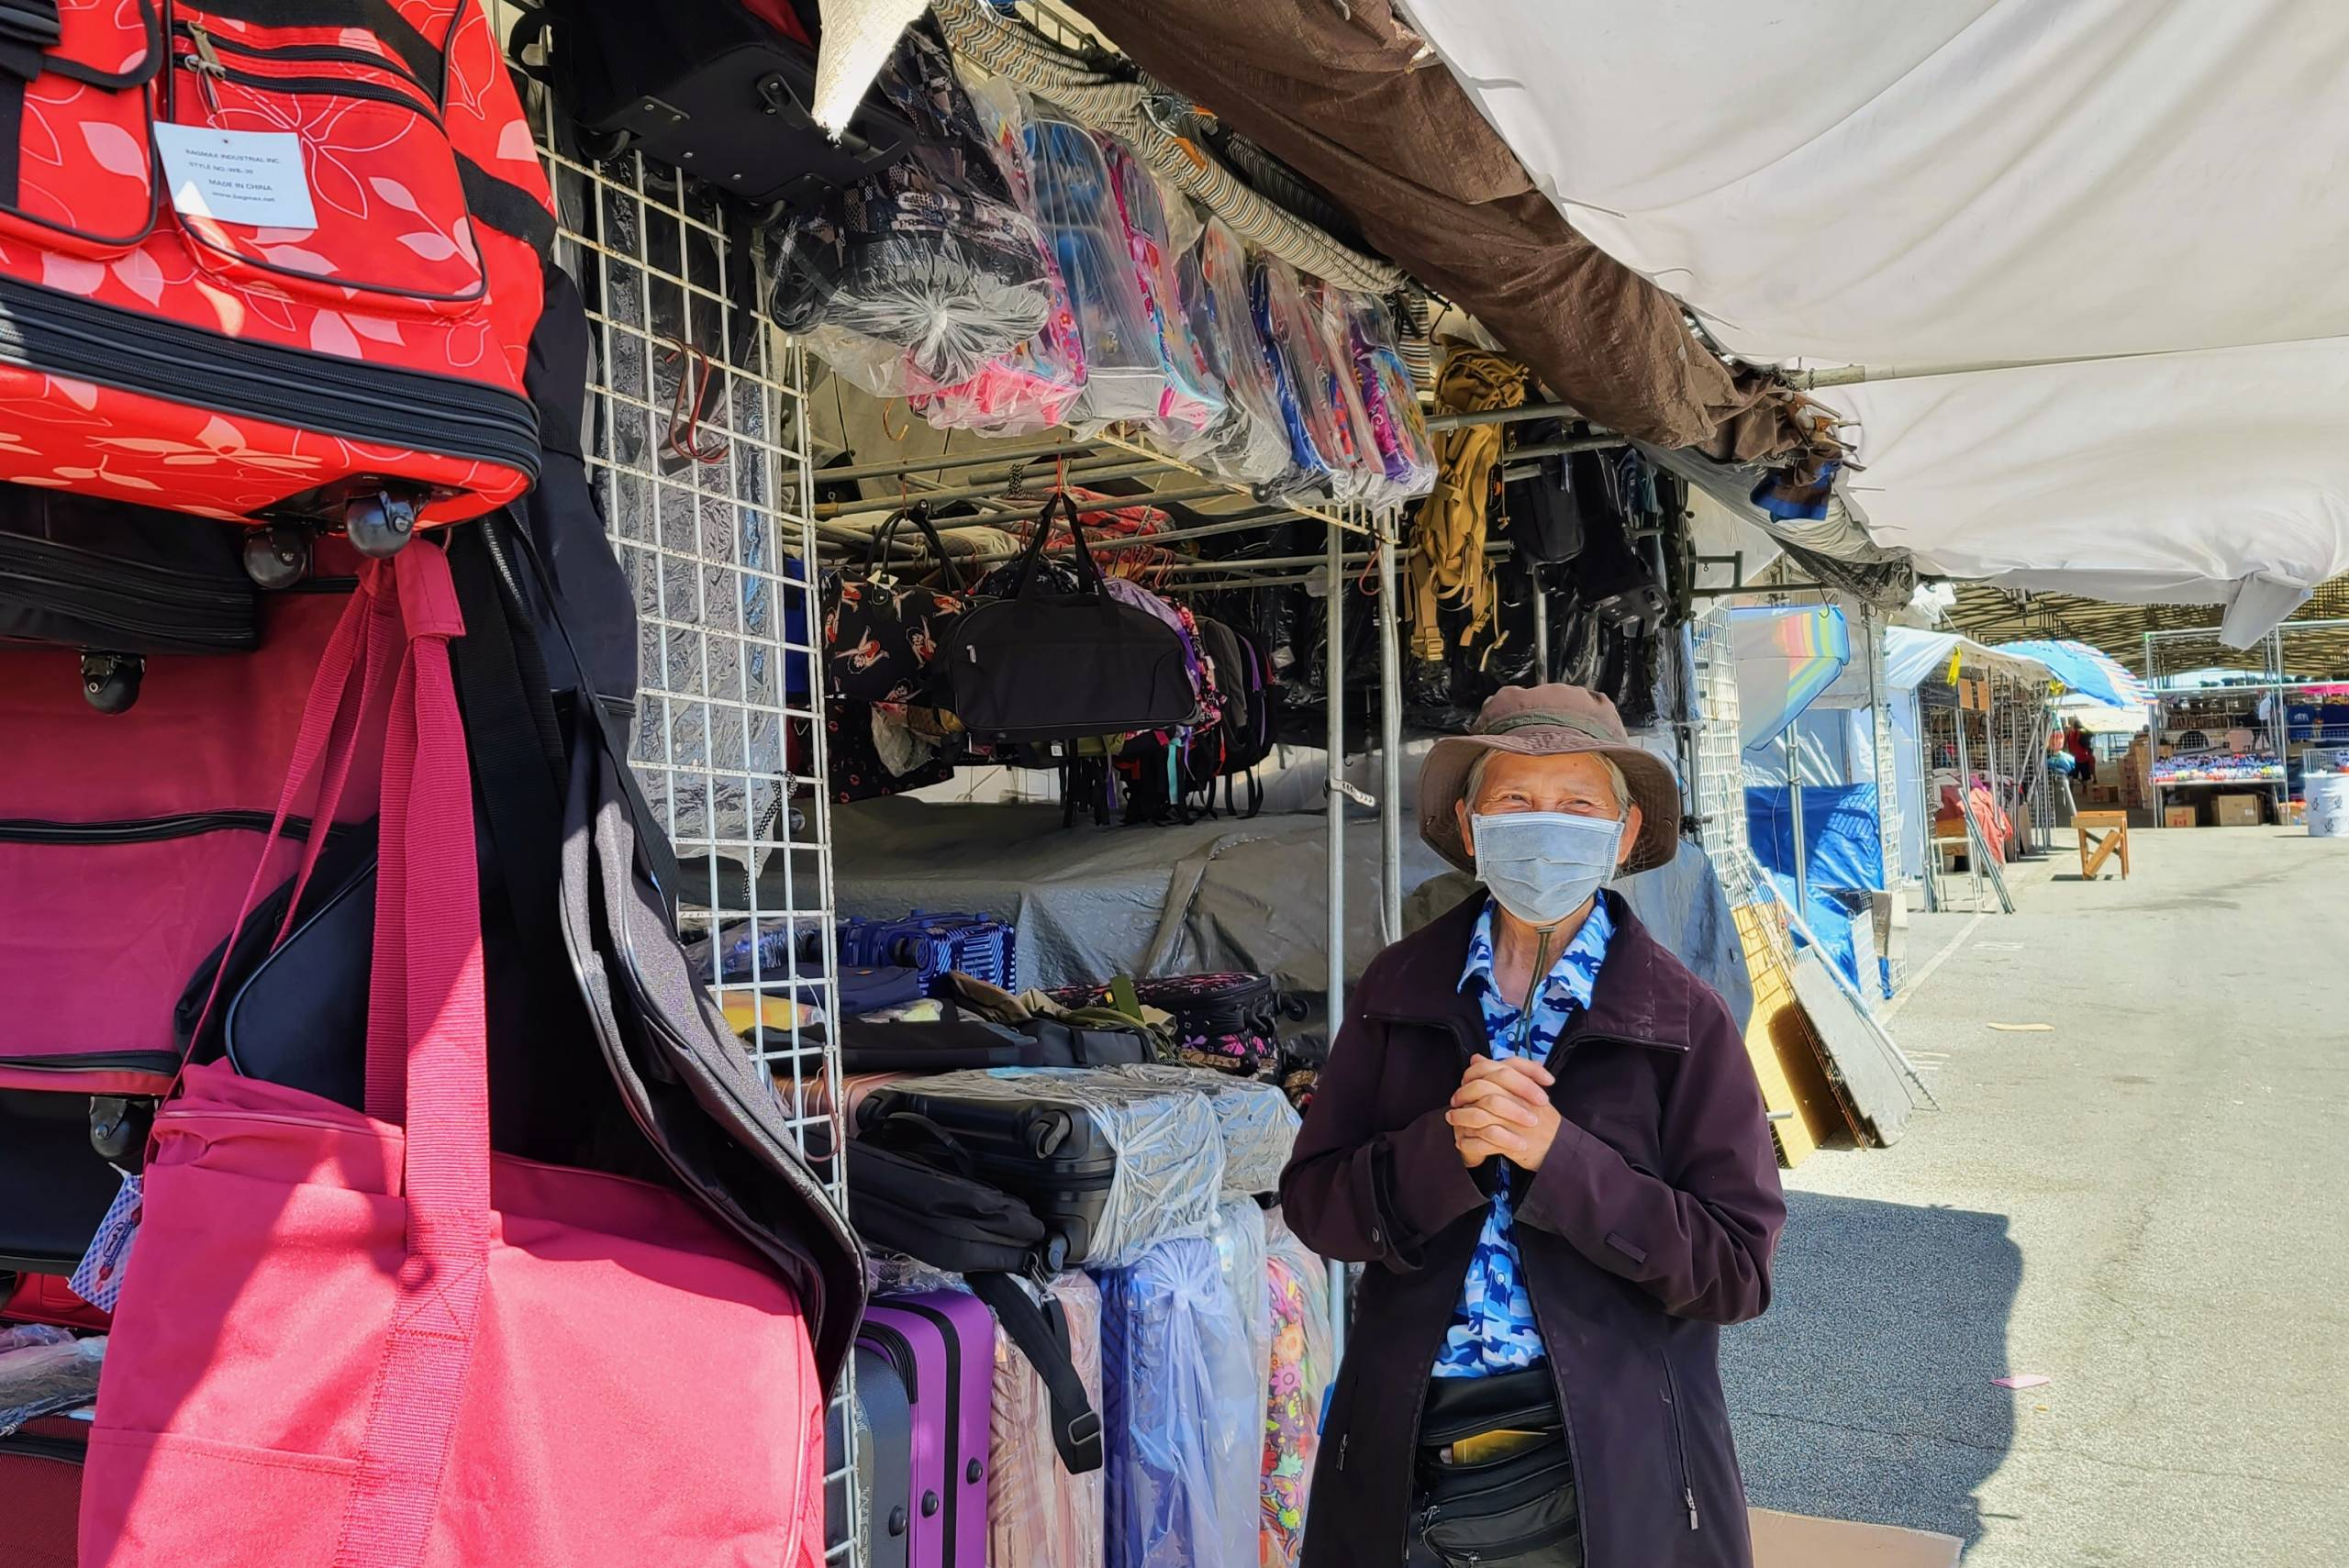 Chau Nguyen stands next to her stall covered in the luggage bags and backpacks she sells.